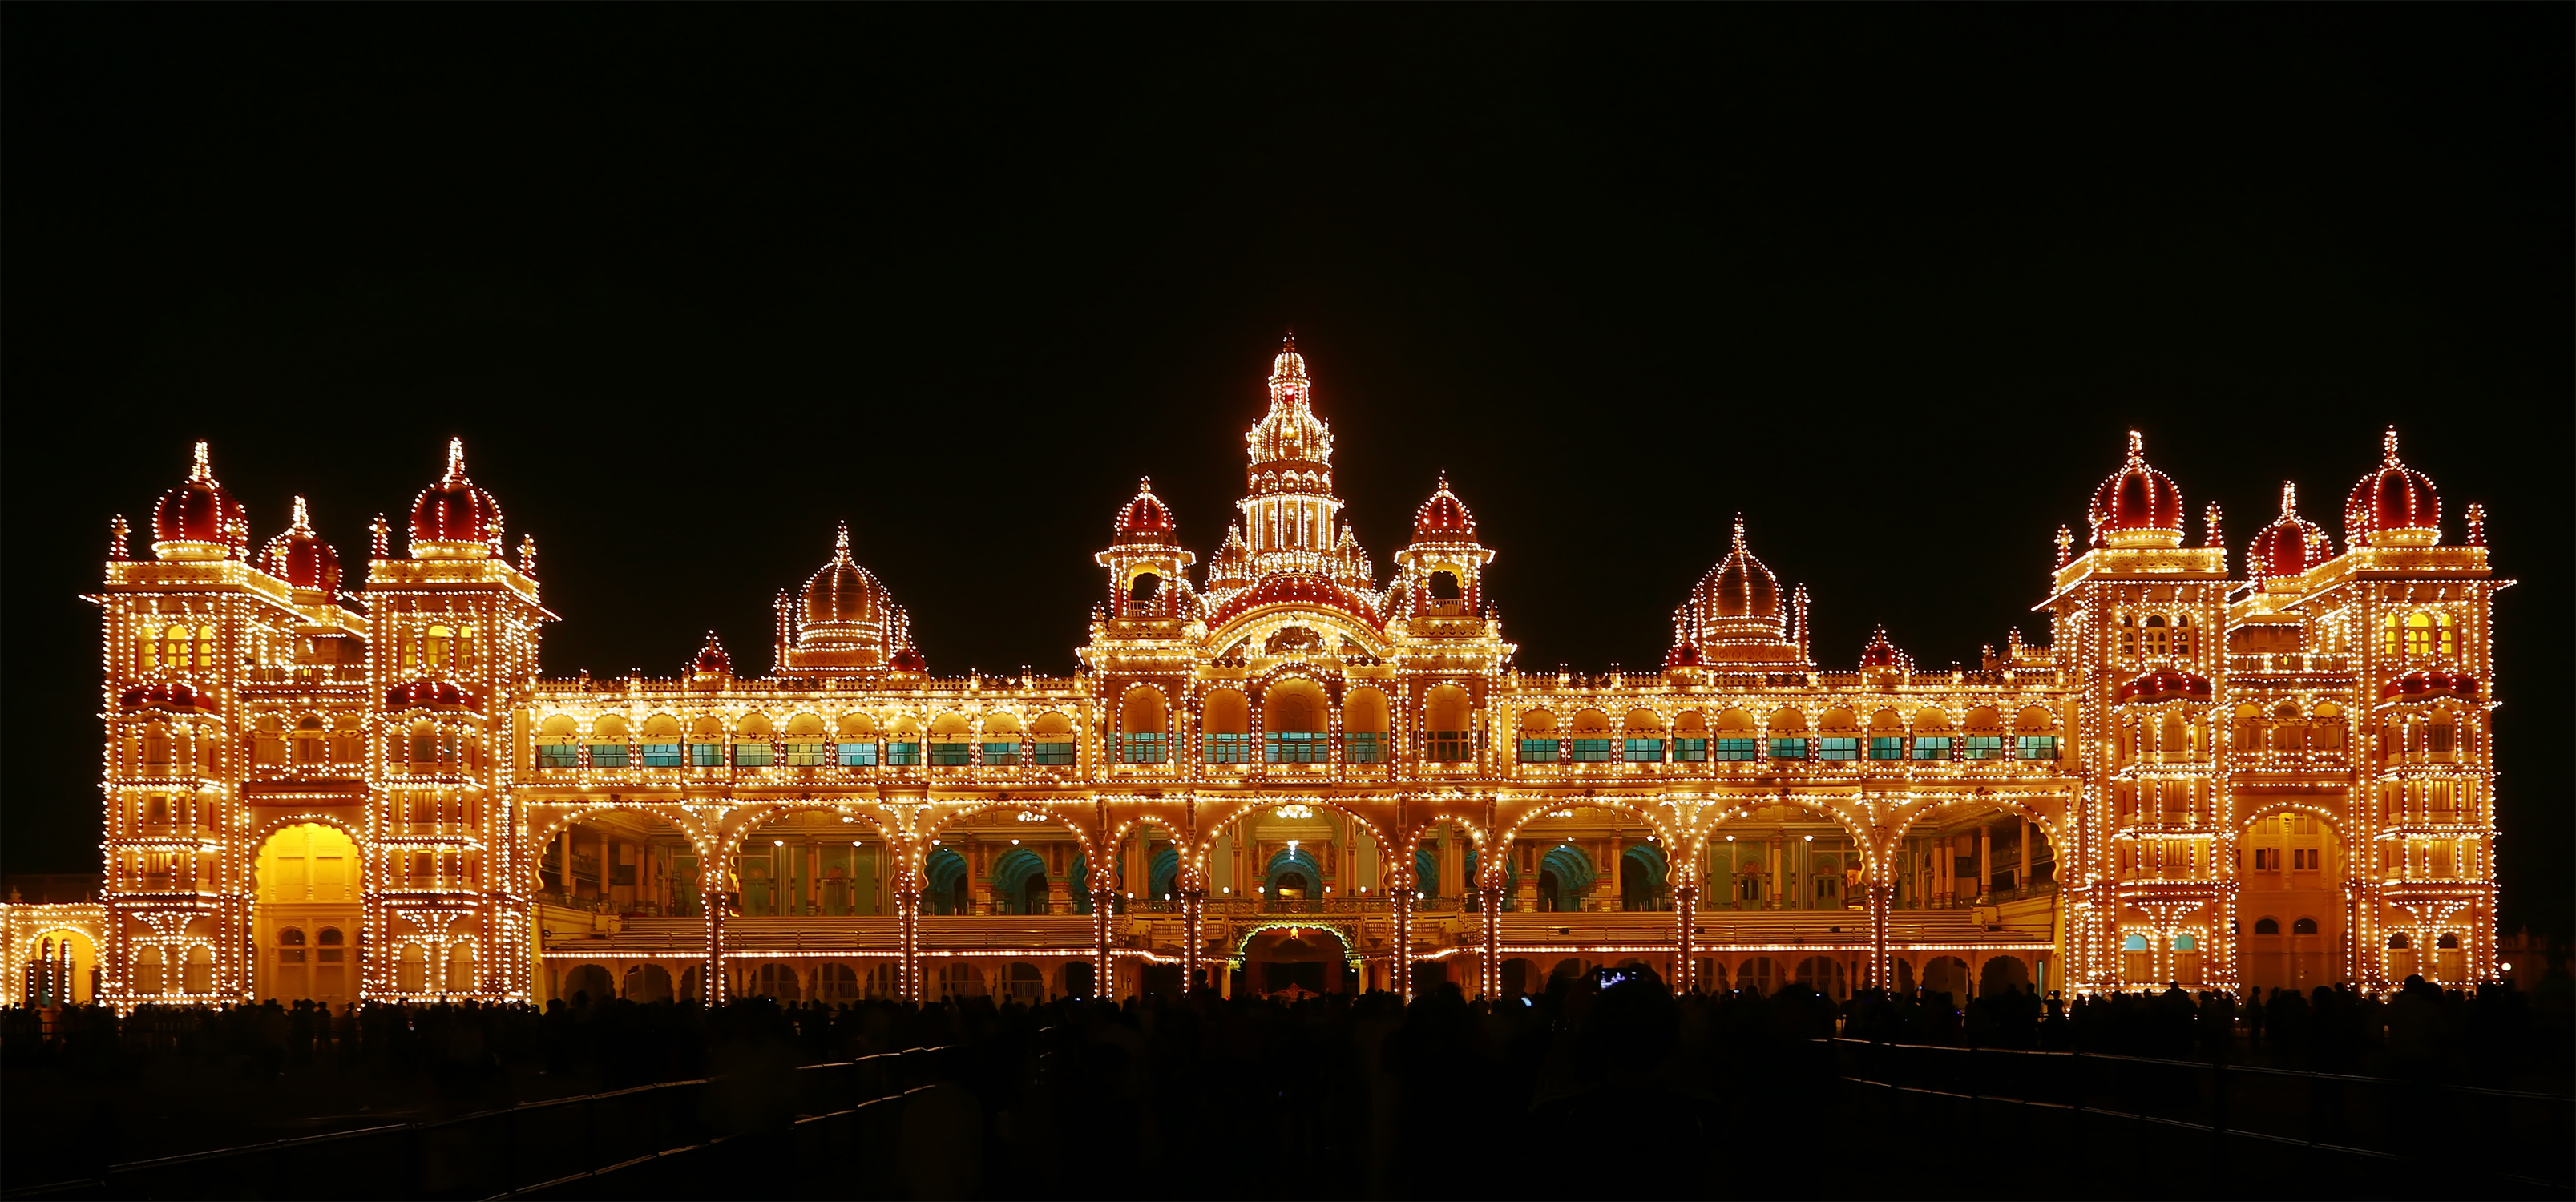 travel images mysore palace illuminated hd wallpaper and background